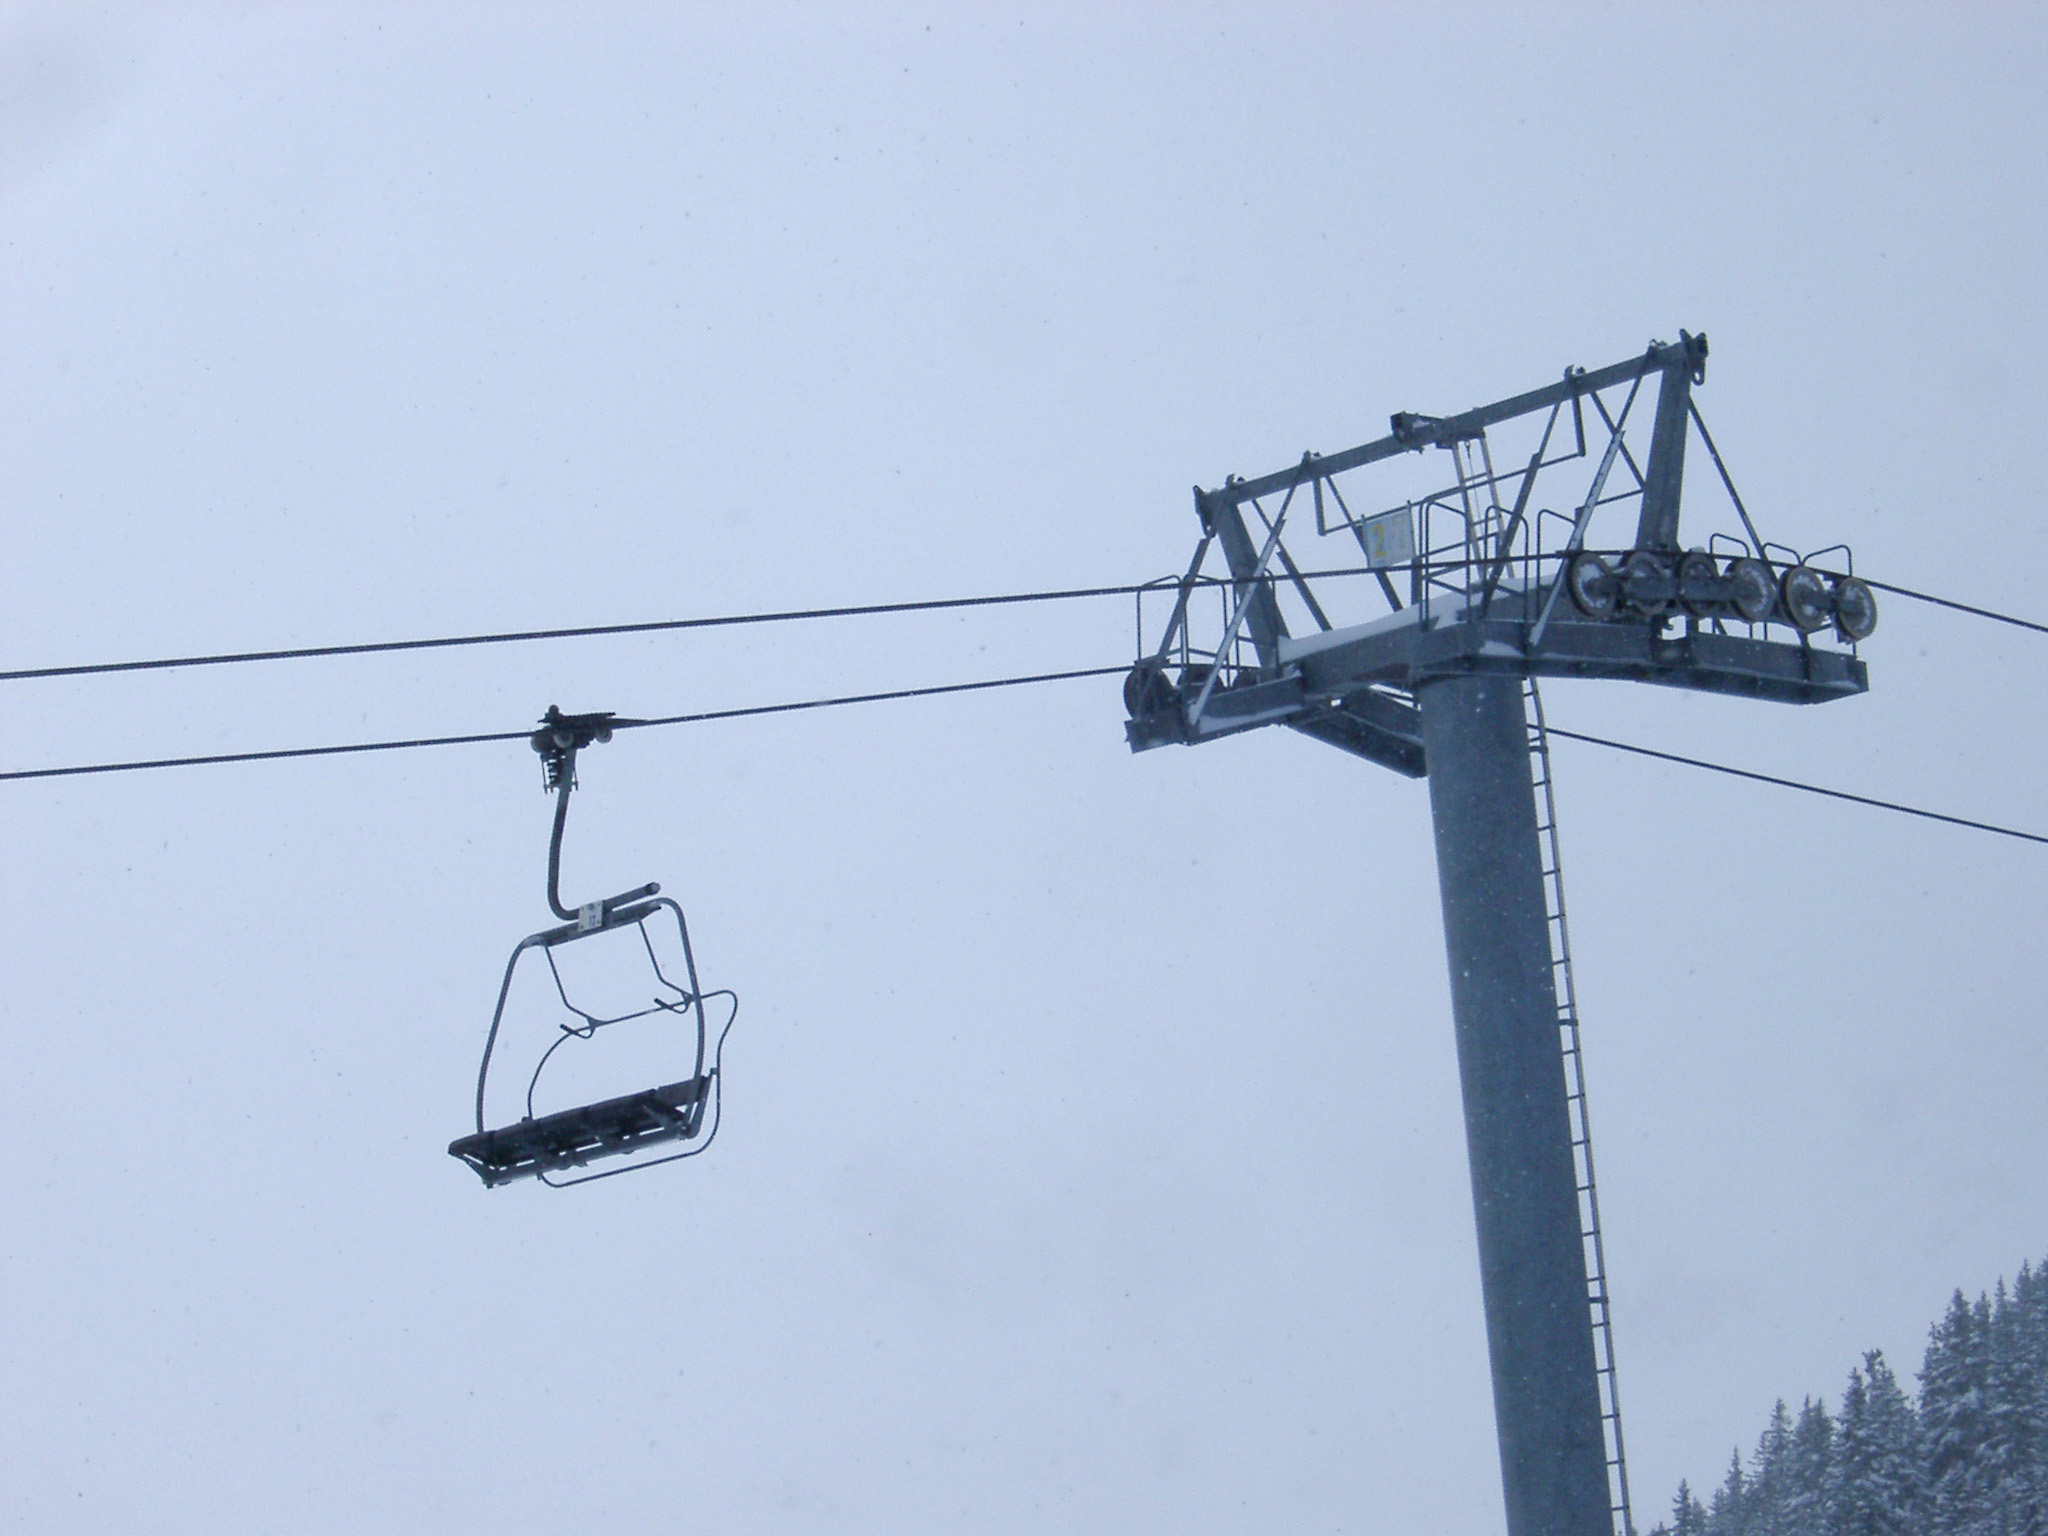 buy ski lift chair notre dame office free stock photo of cable car or alpine